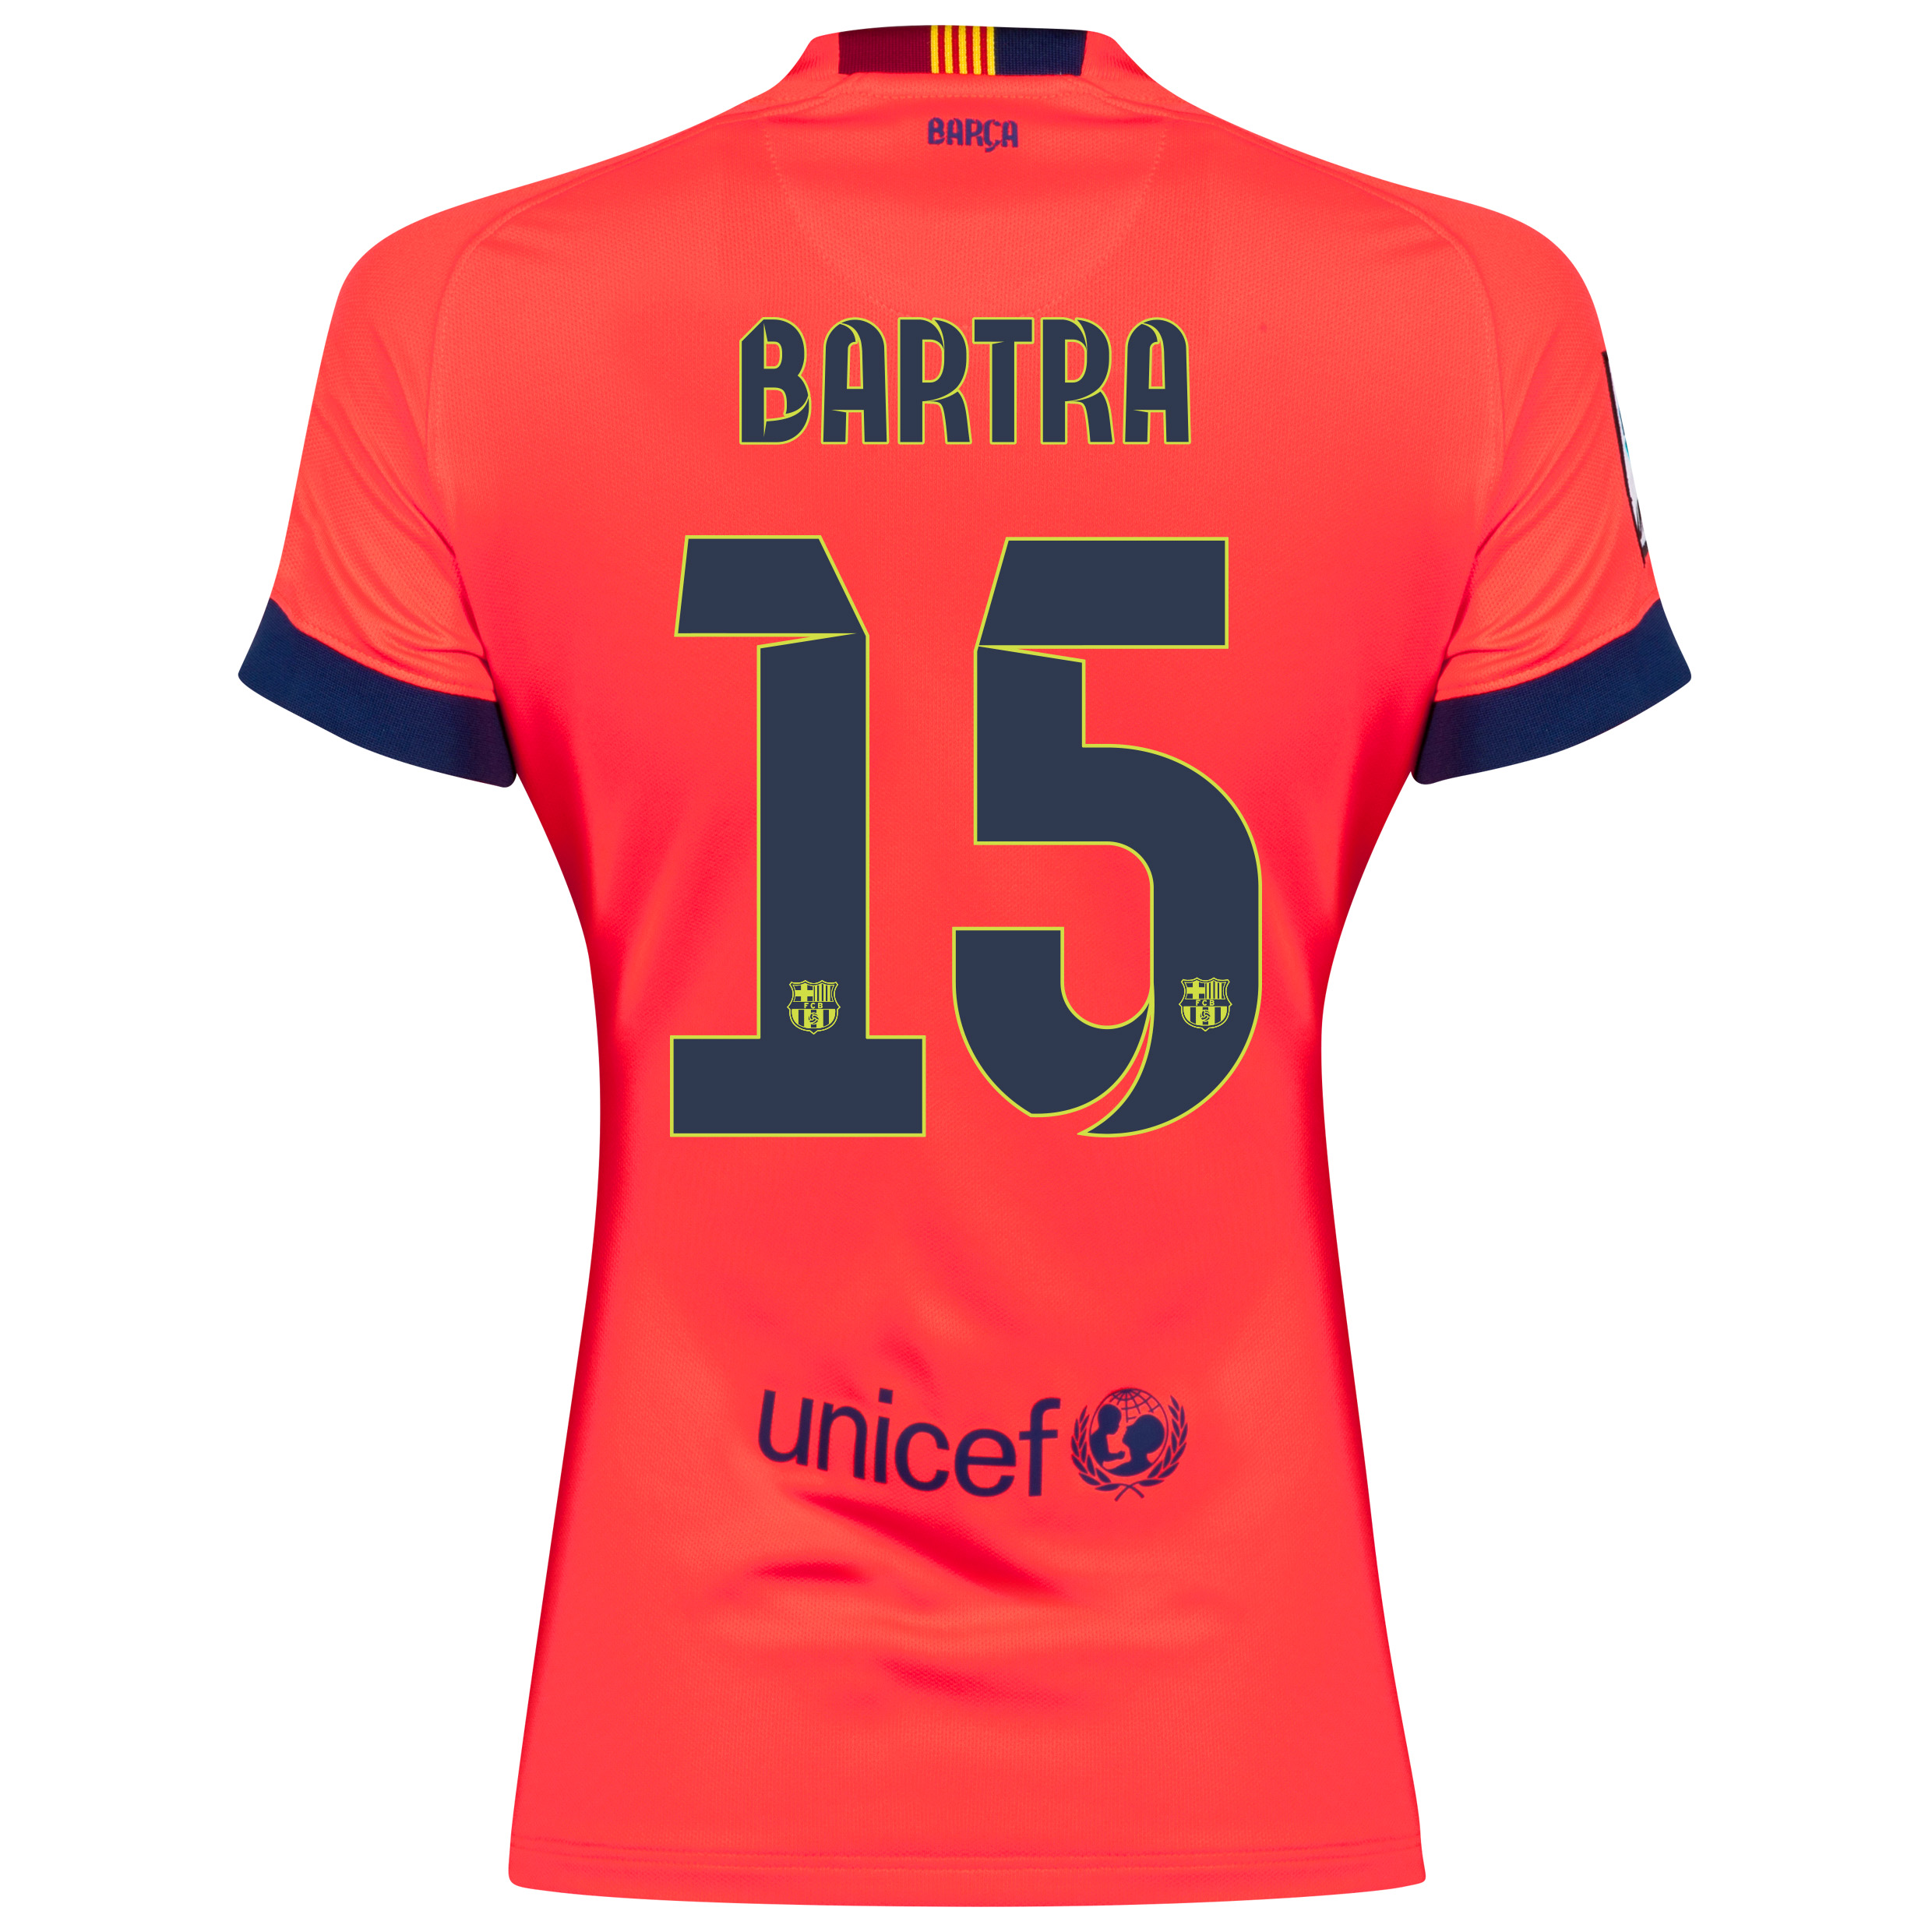 Barcelona Away Shirt 2014/15 - Womens Red with Bartra 15 printing